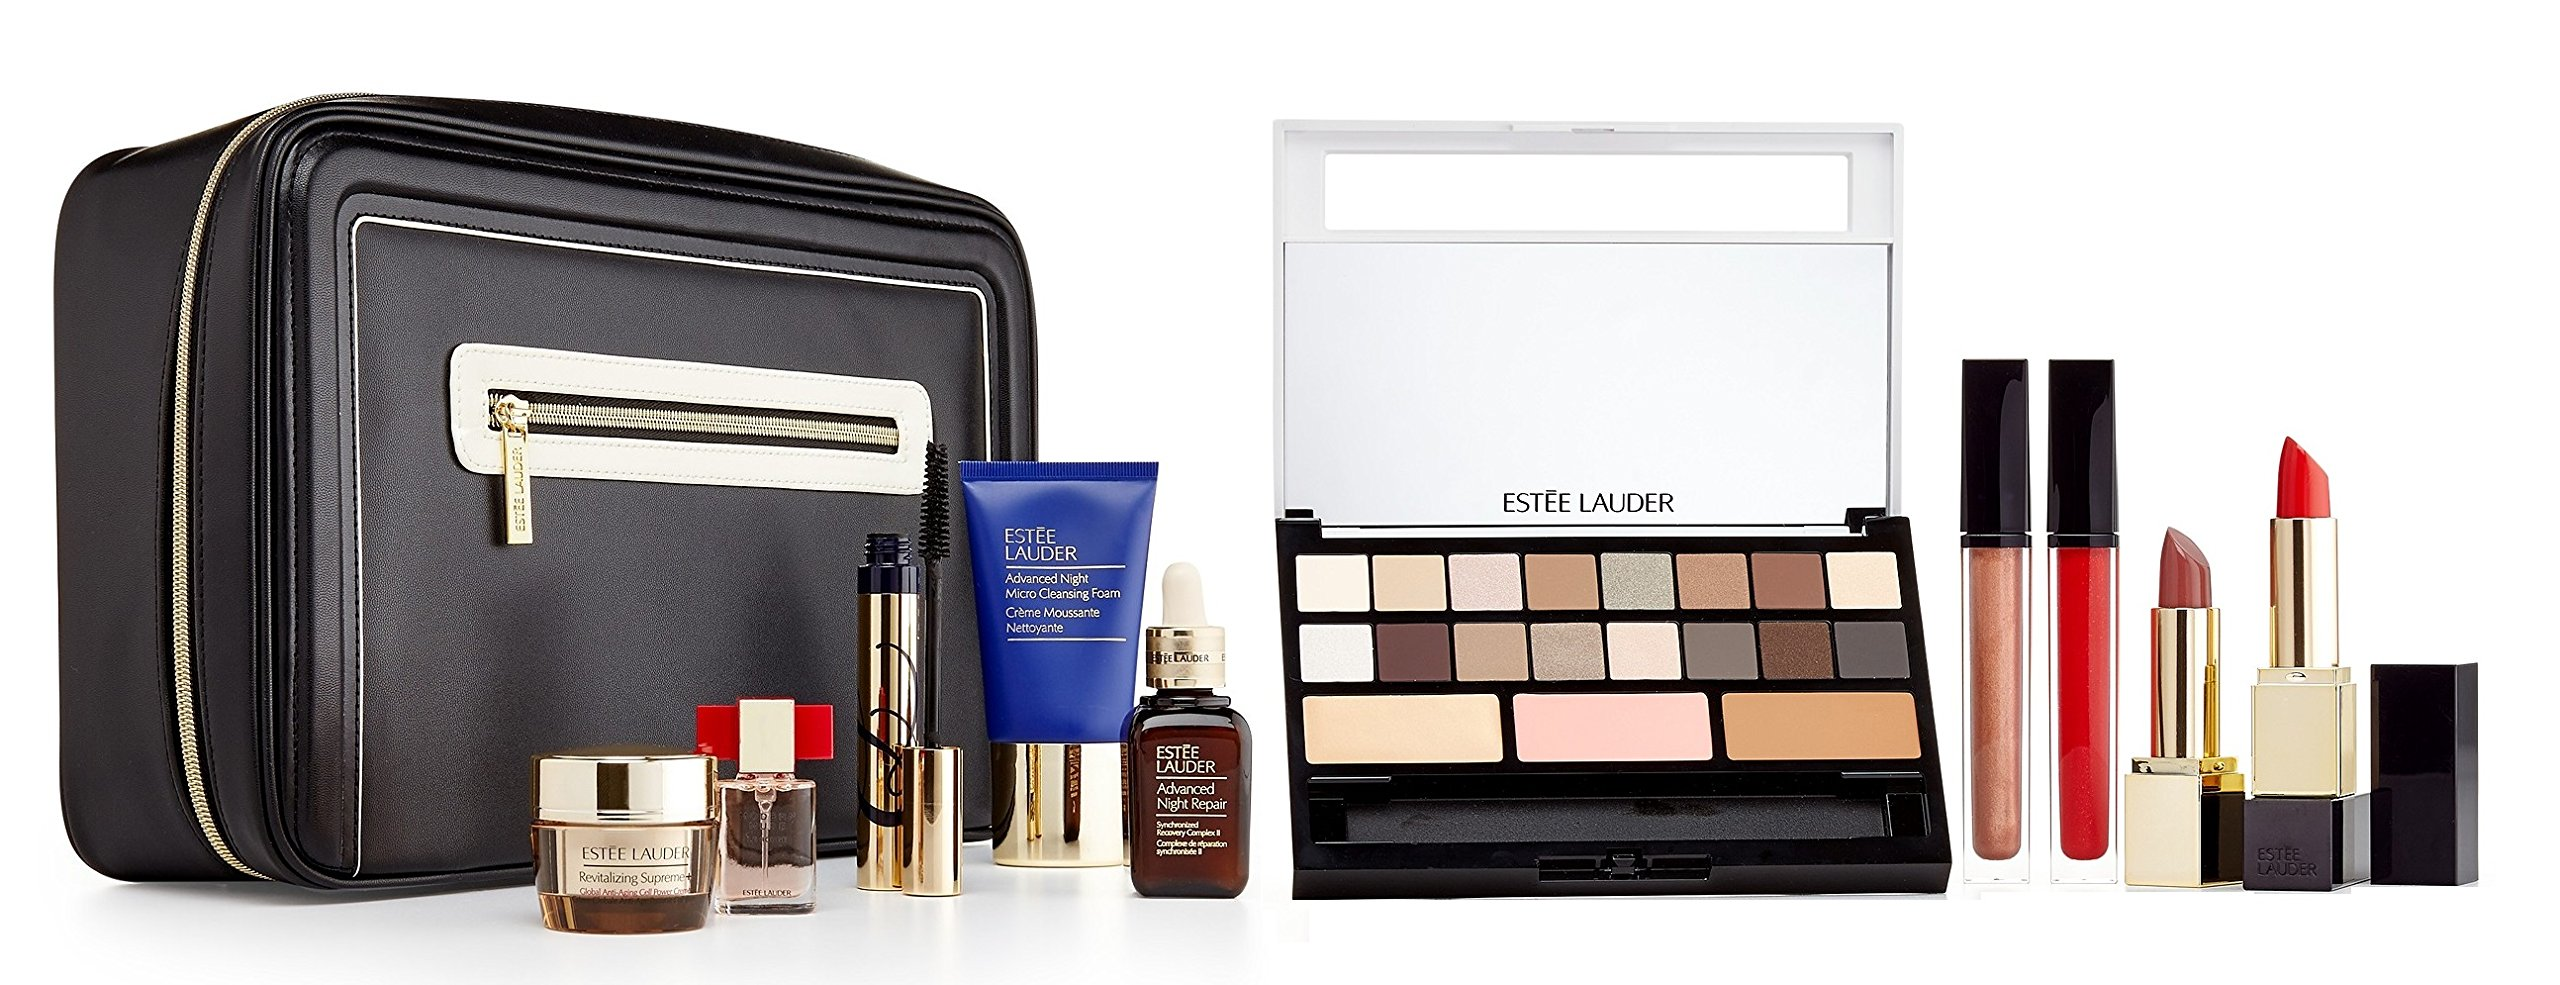 amazoncom estee lauder 2016 blockbuster holiday make up gift set wtrain case modern nudes beauty